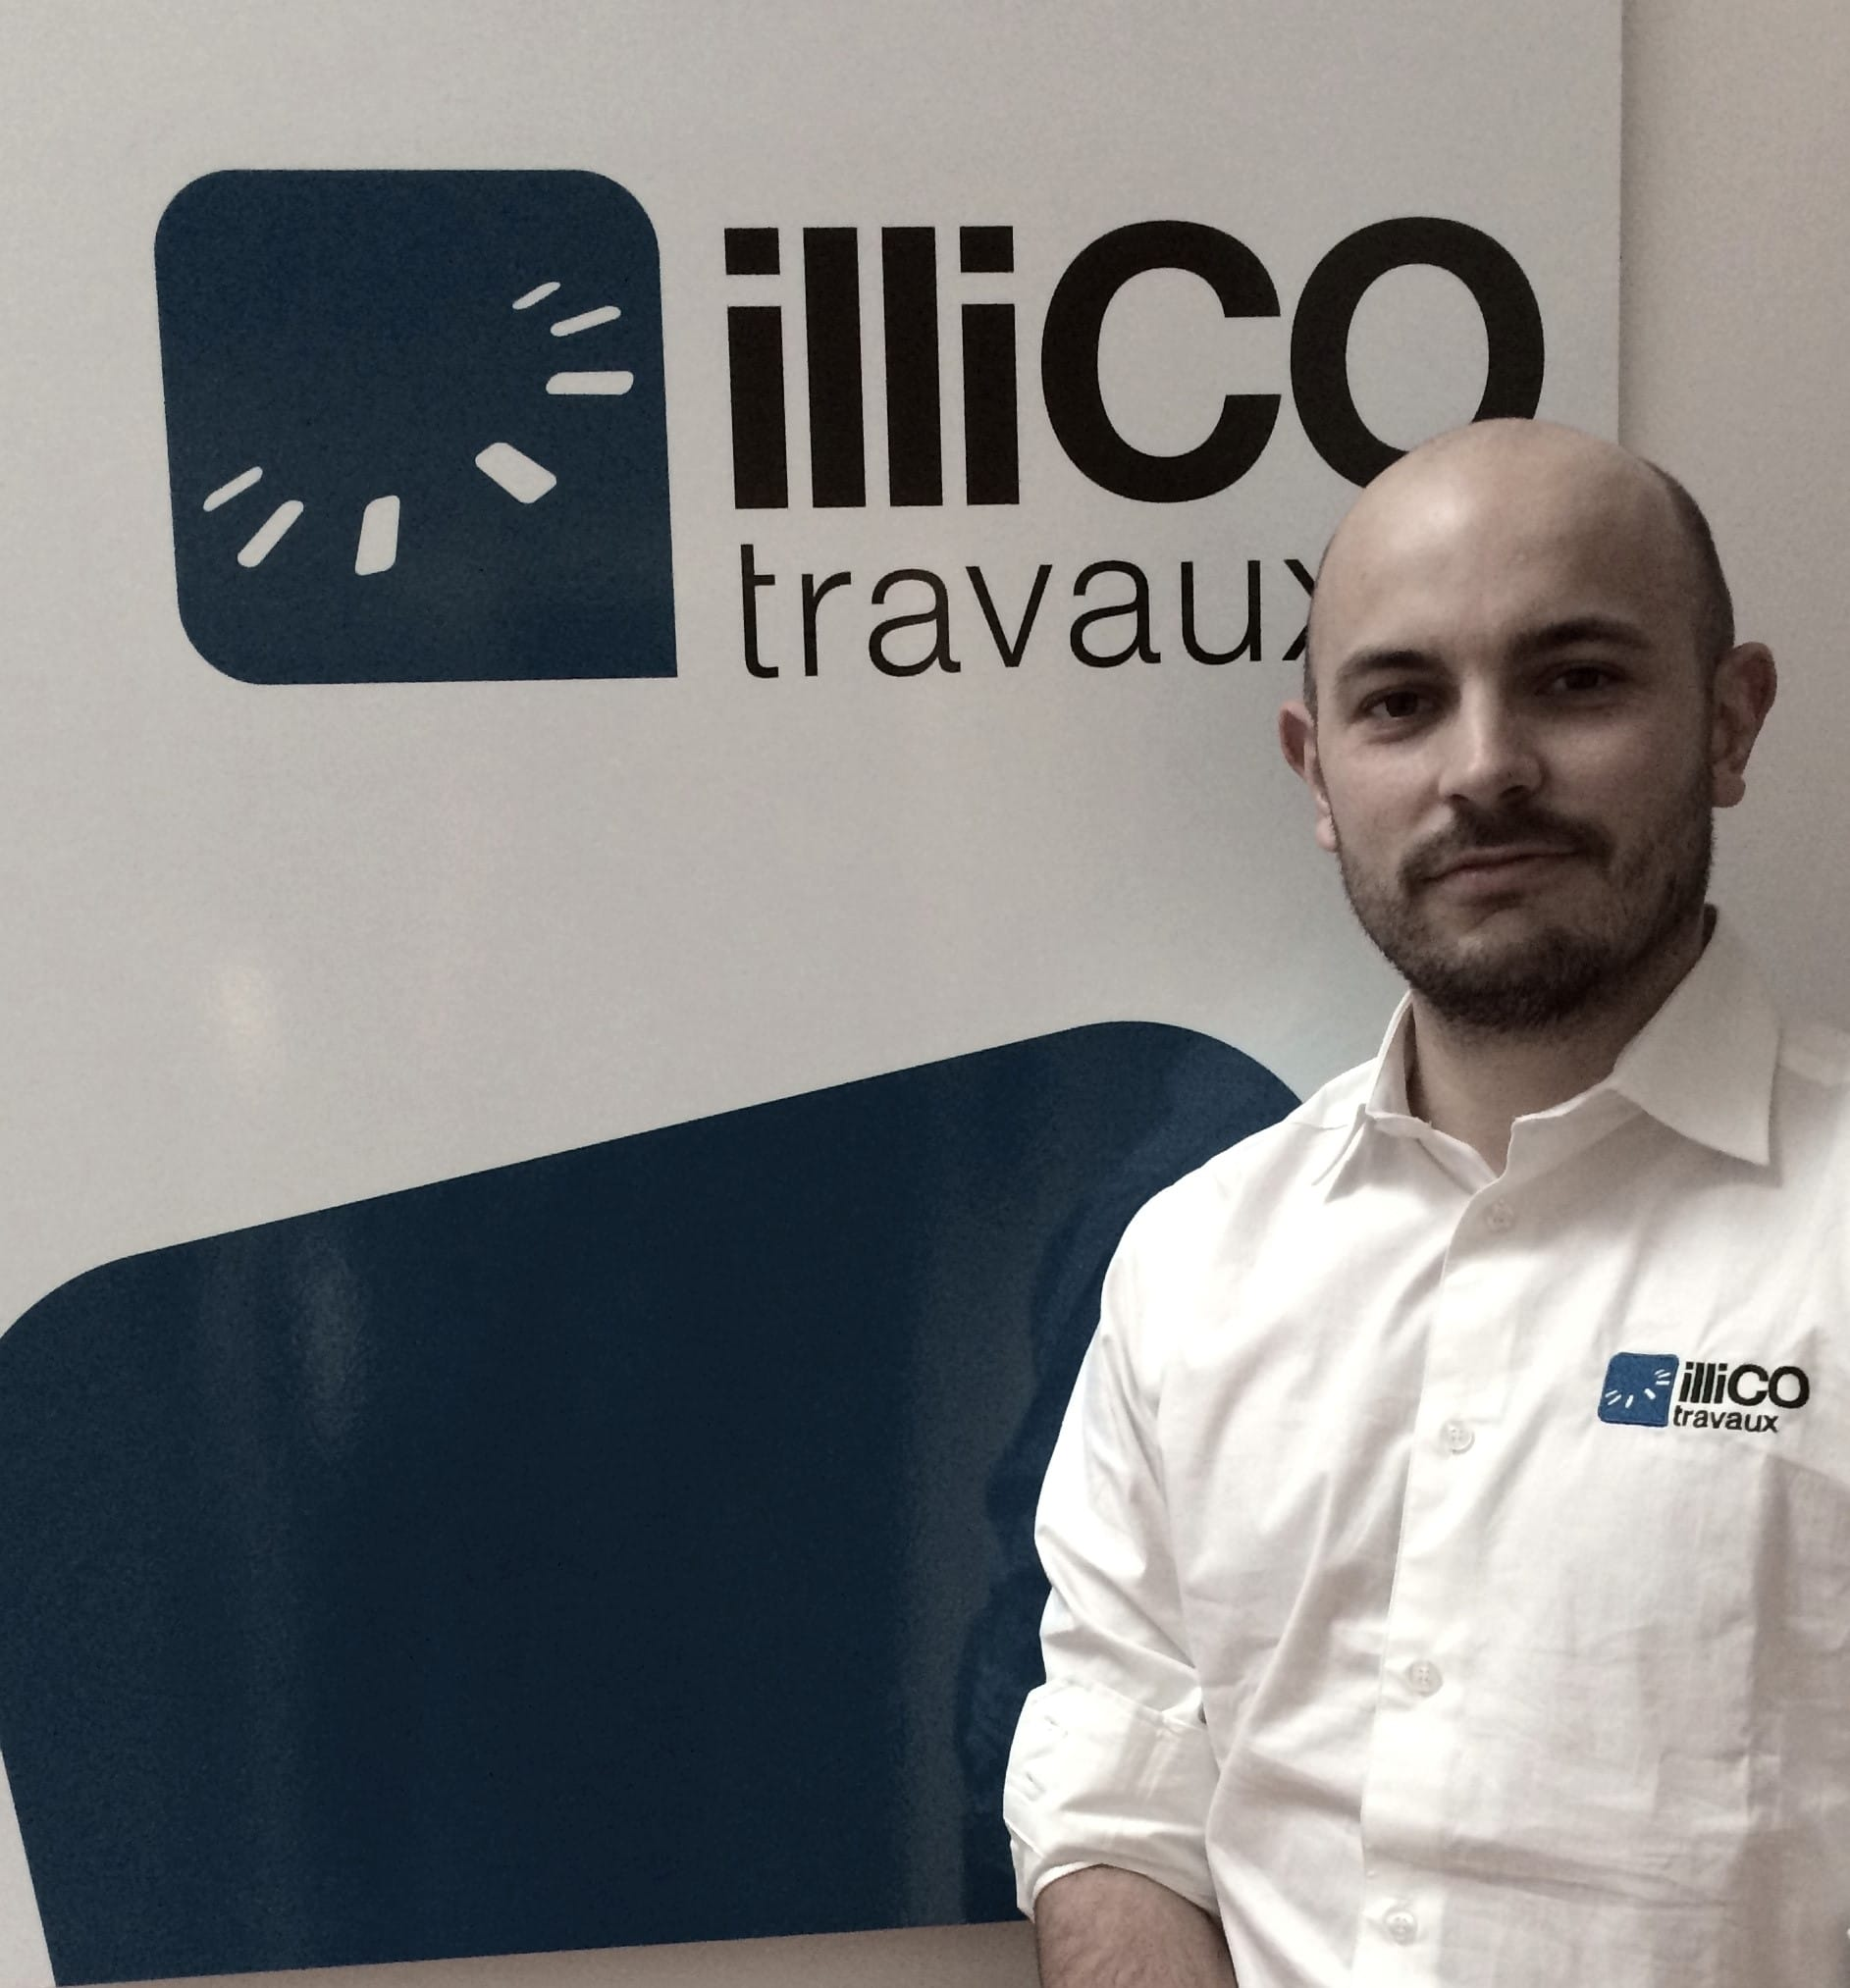 illiCO travaux Tours